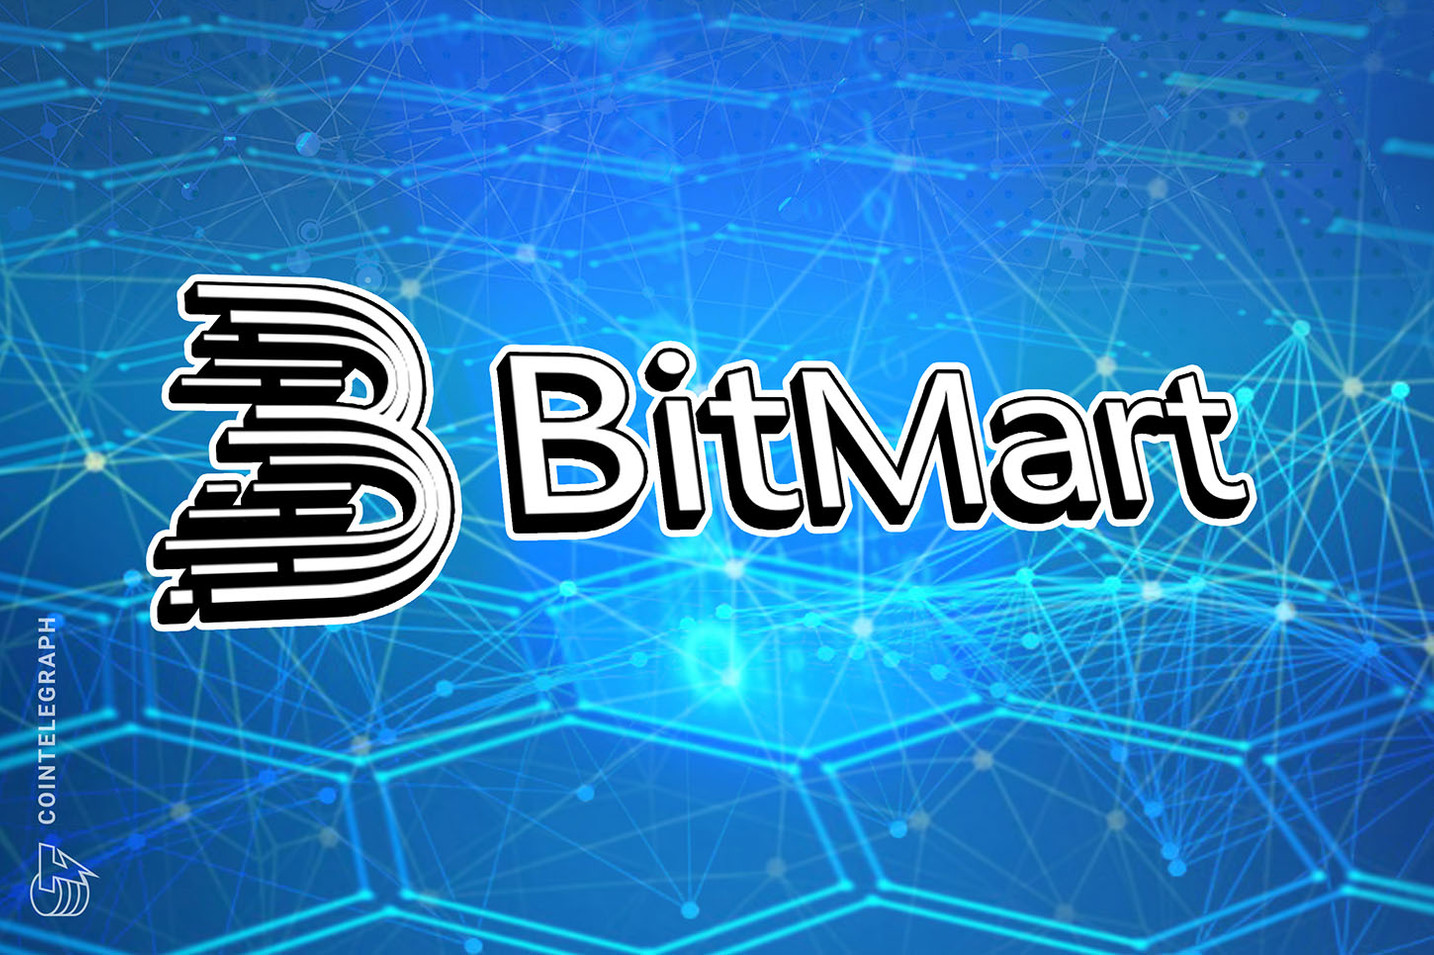 BitMart cryptos of the year: Top 10 coins with huge potential in 2021